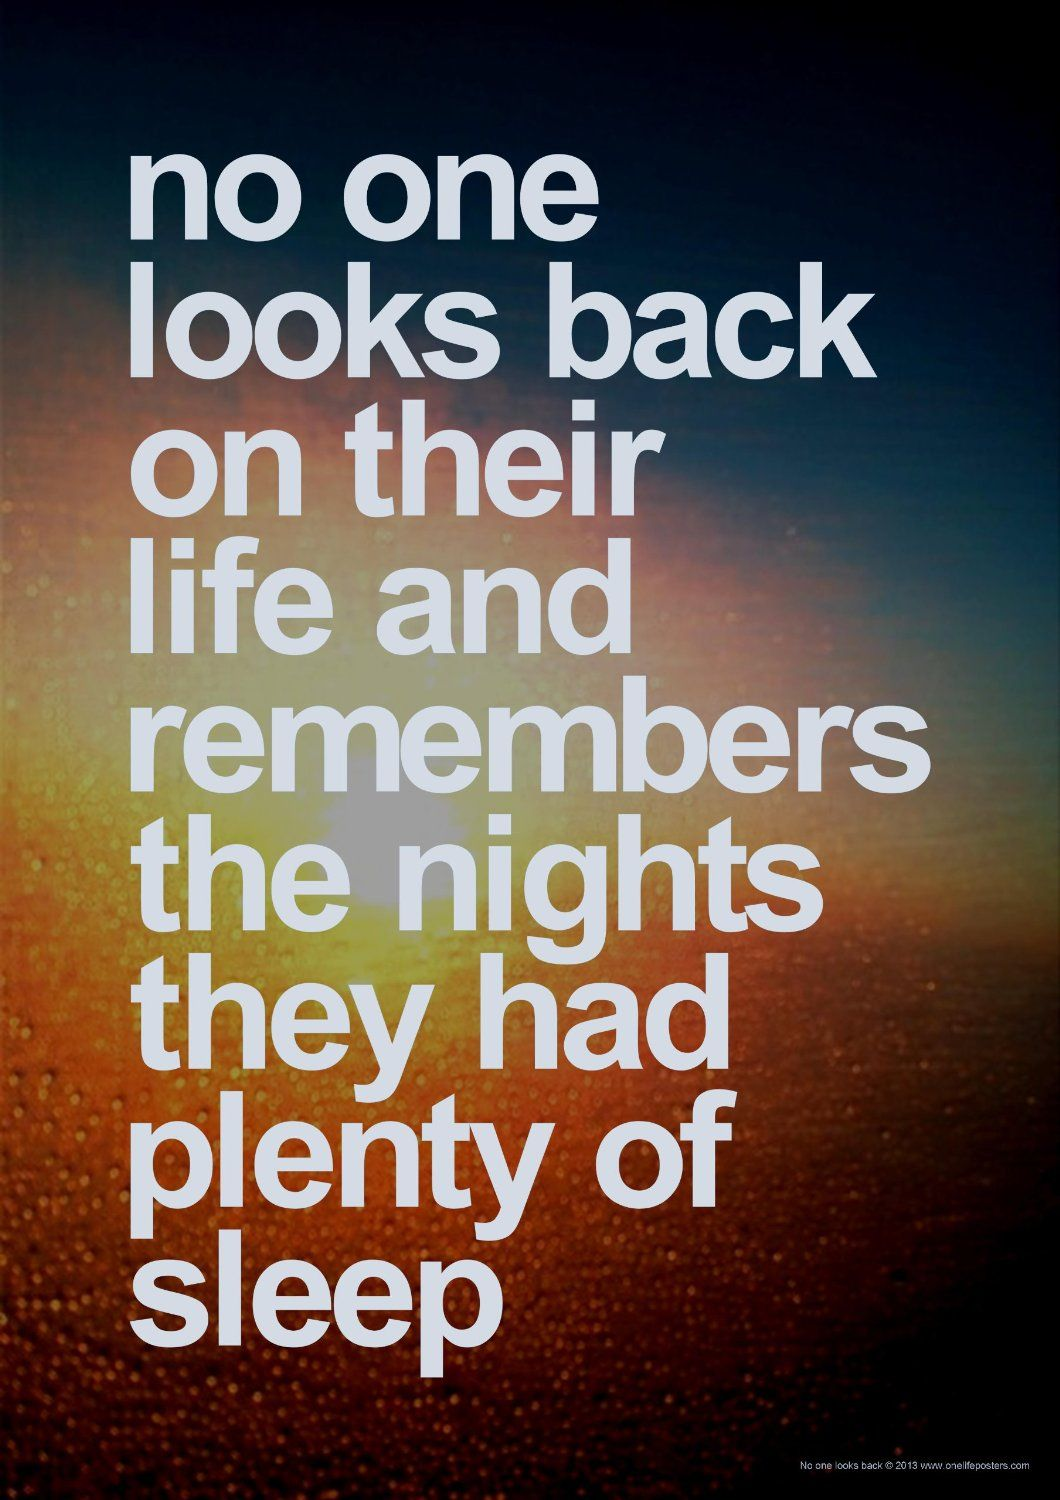 Inspirational Thoughts About Life No One Looks Back On Their Life And Remembers The Nights They Had